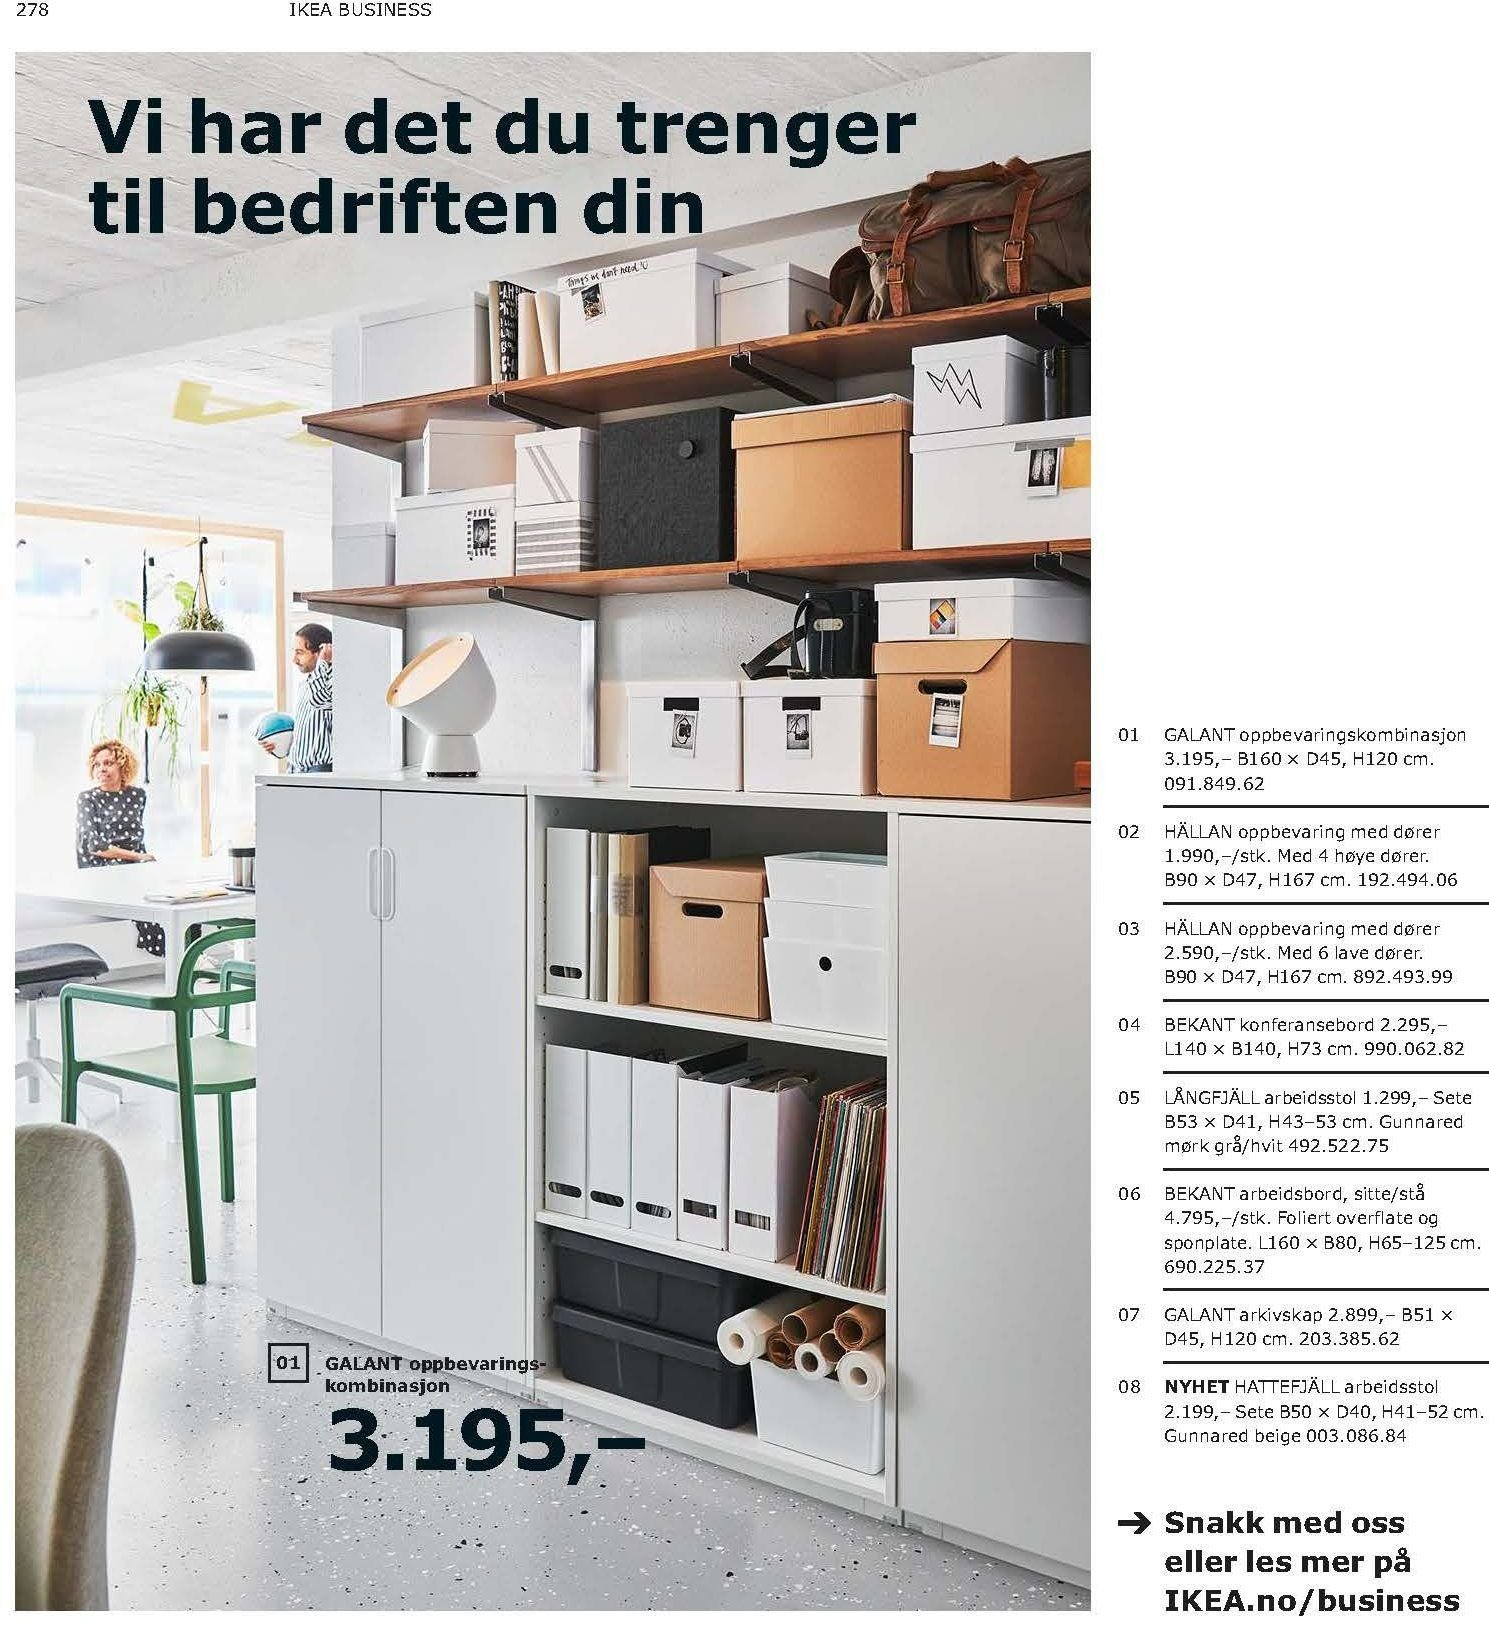 Kundeavis IKEA - 21.08.2018 - 11.08.2019. Side 278.